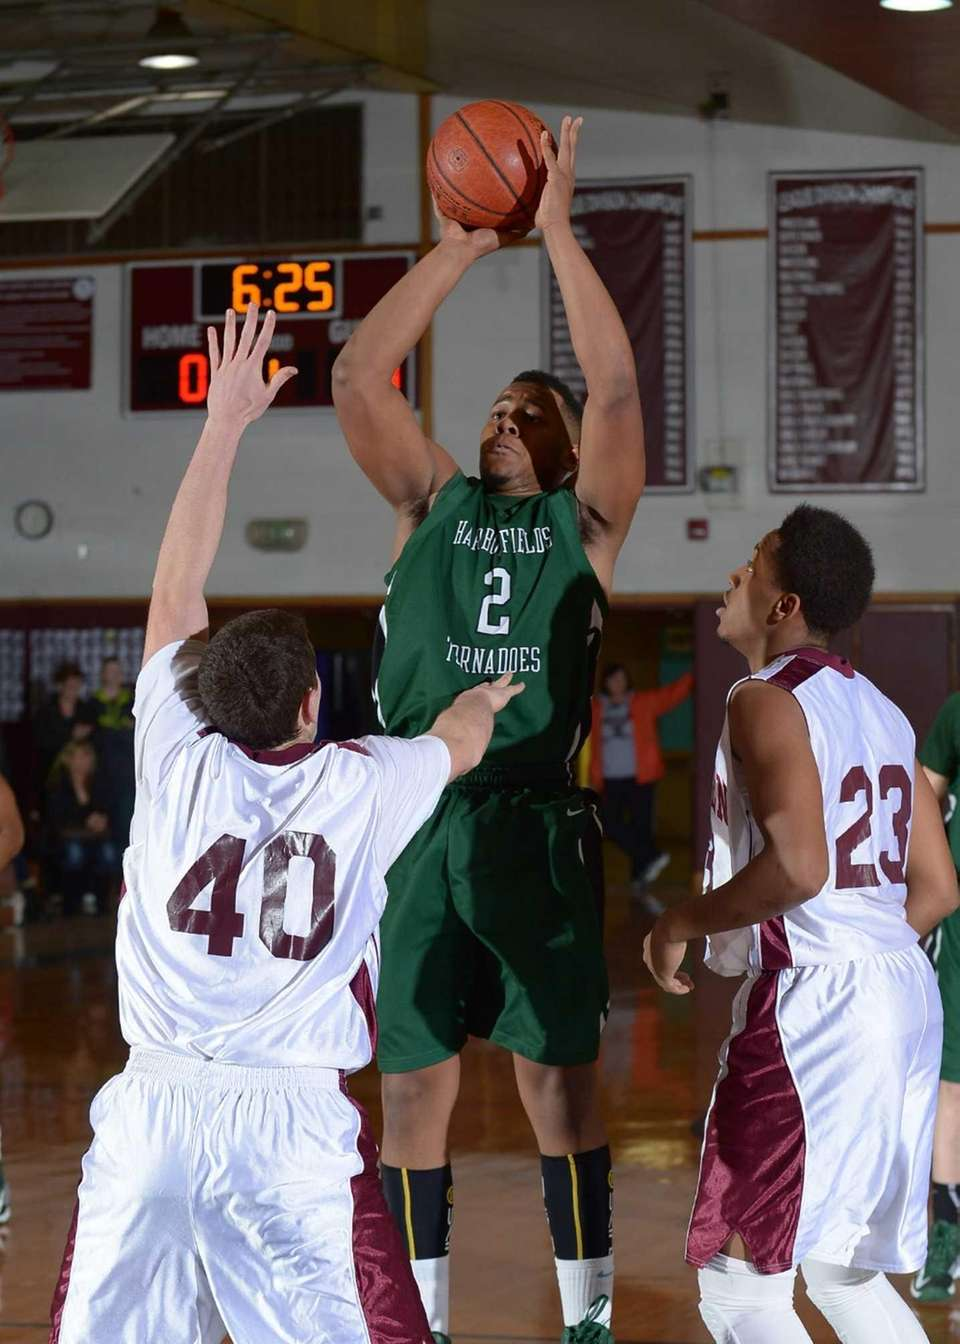 Harborfields' Jon Patron (2) goes up for the